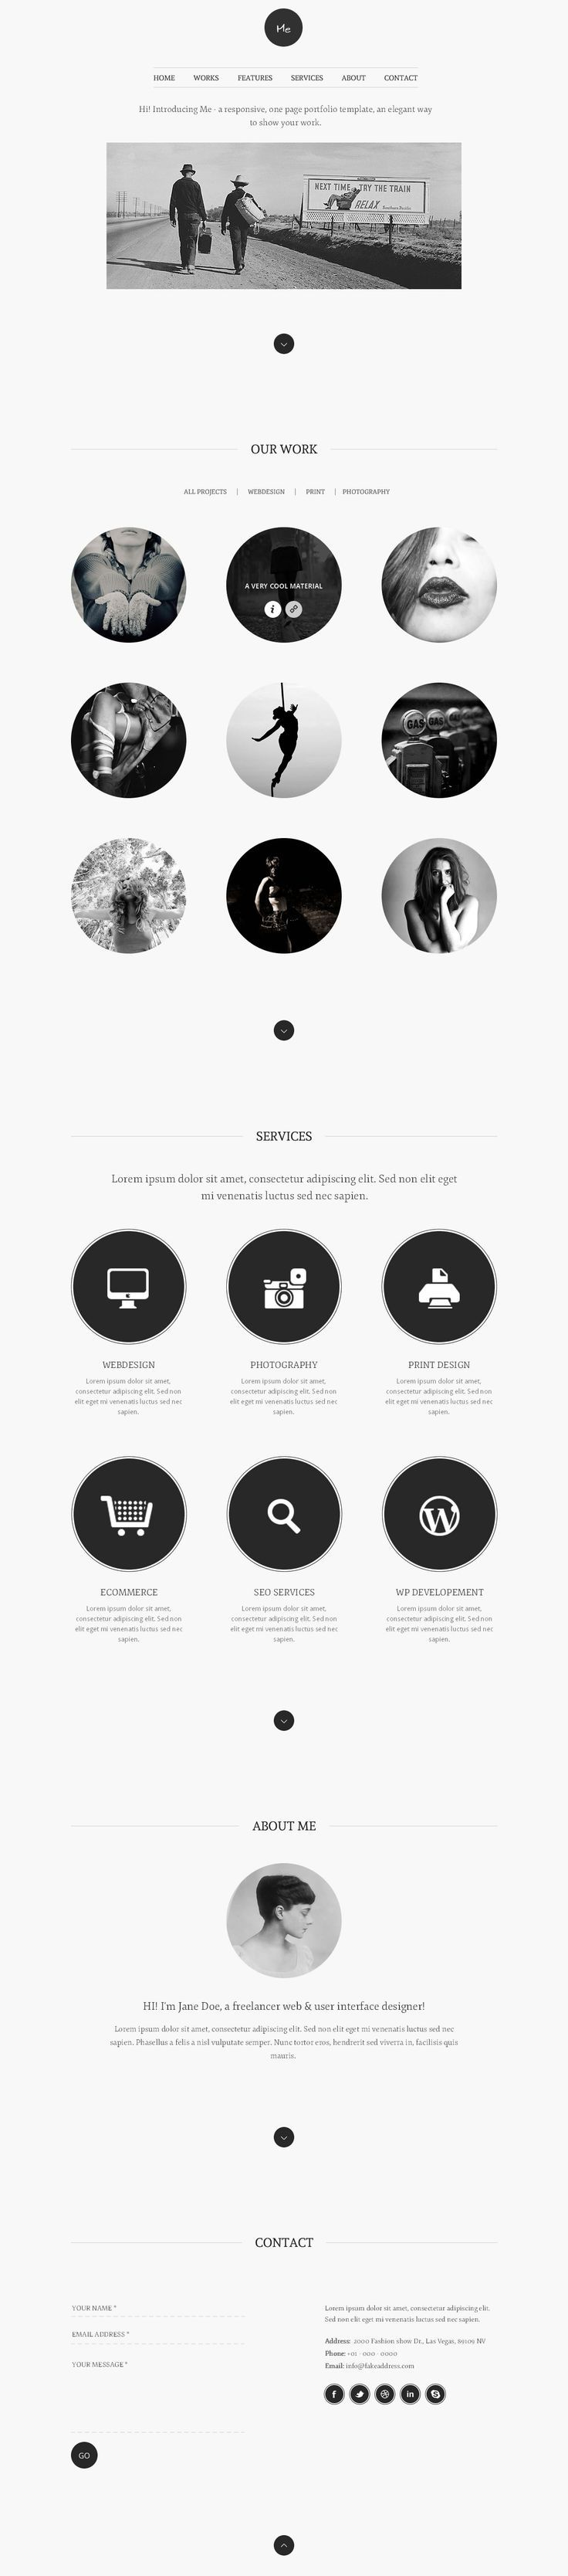 15 Examples of Black and White Web Design | Downgraf